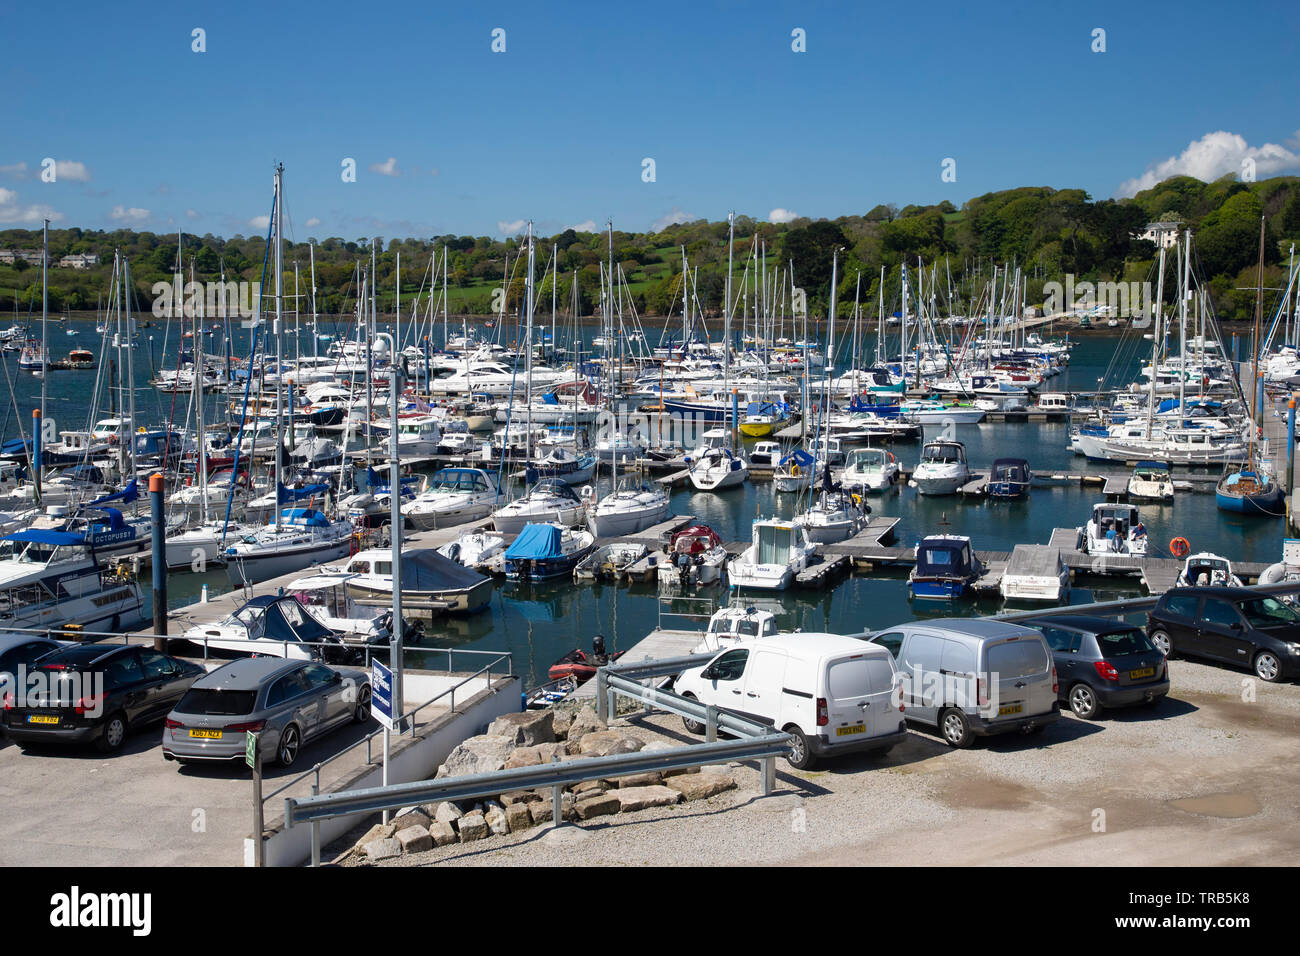 Falmouth Marina in Cornwall is one of the largest natural deep sea harbours in the world and in the sheltered waters of the Fal estuary - Stock Image